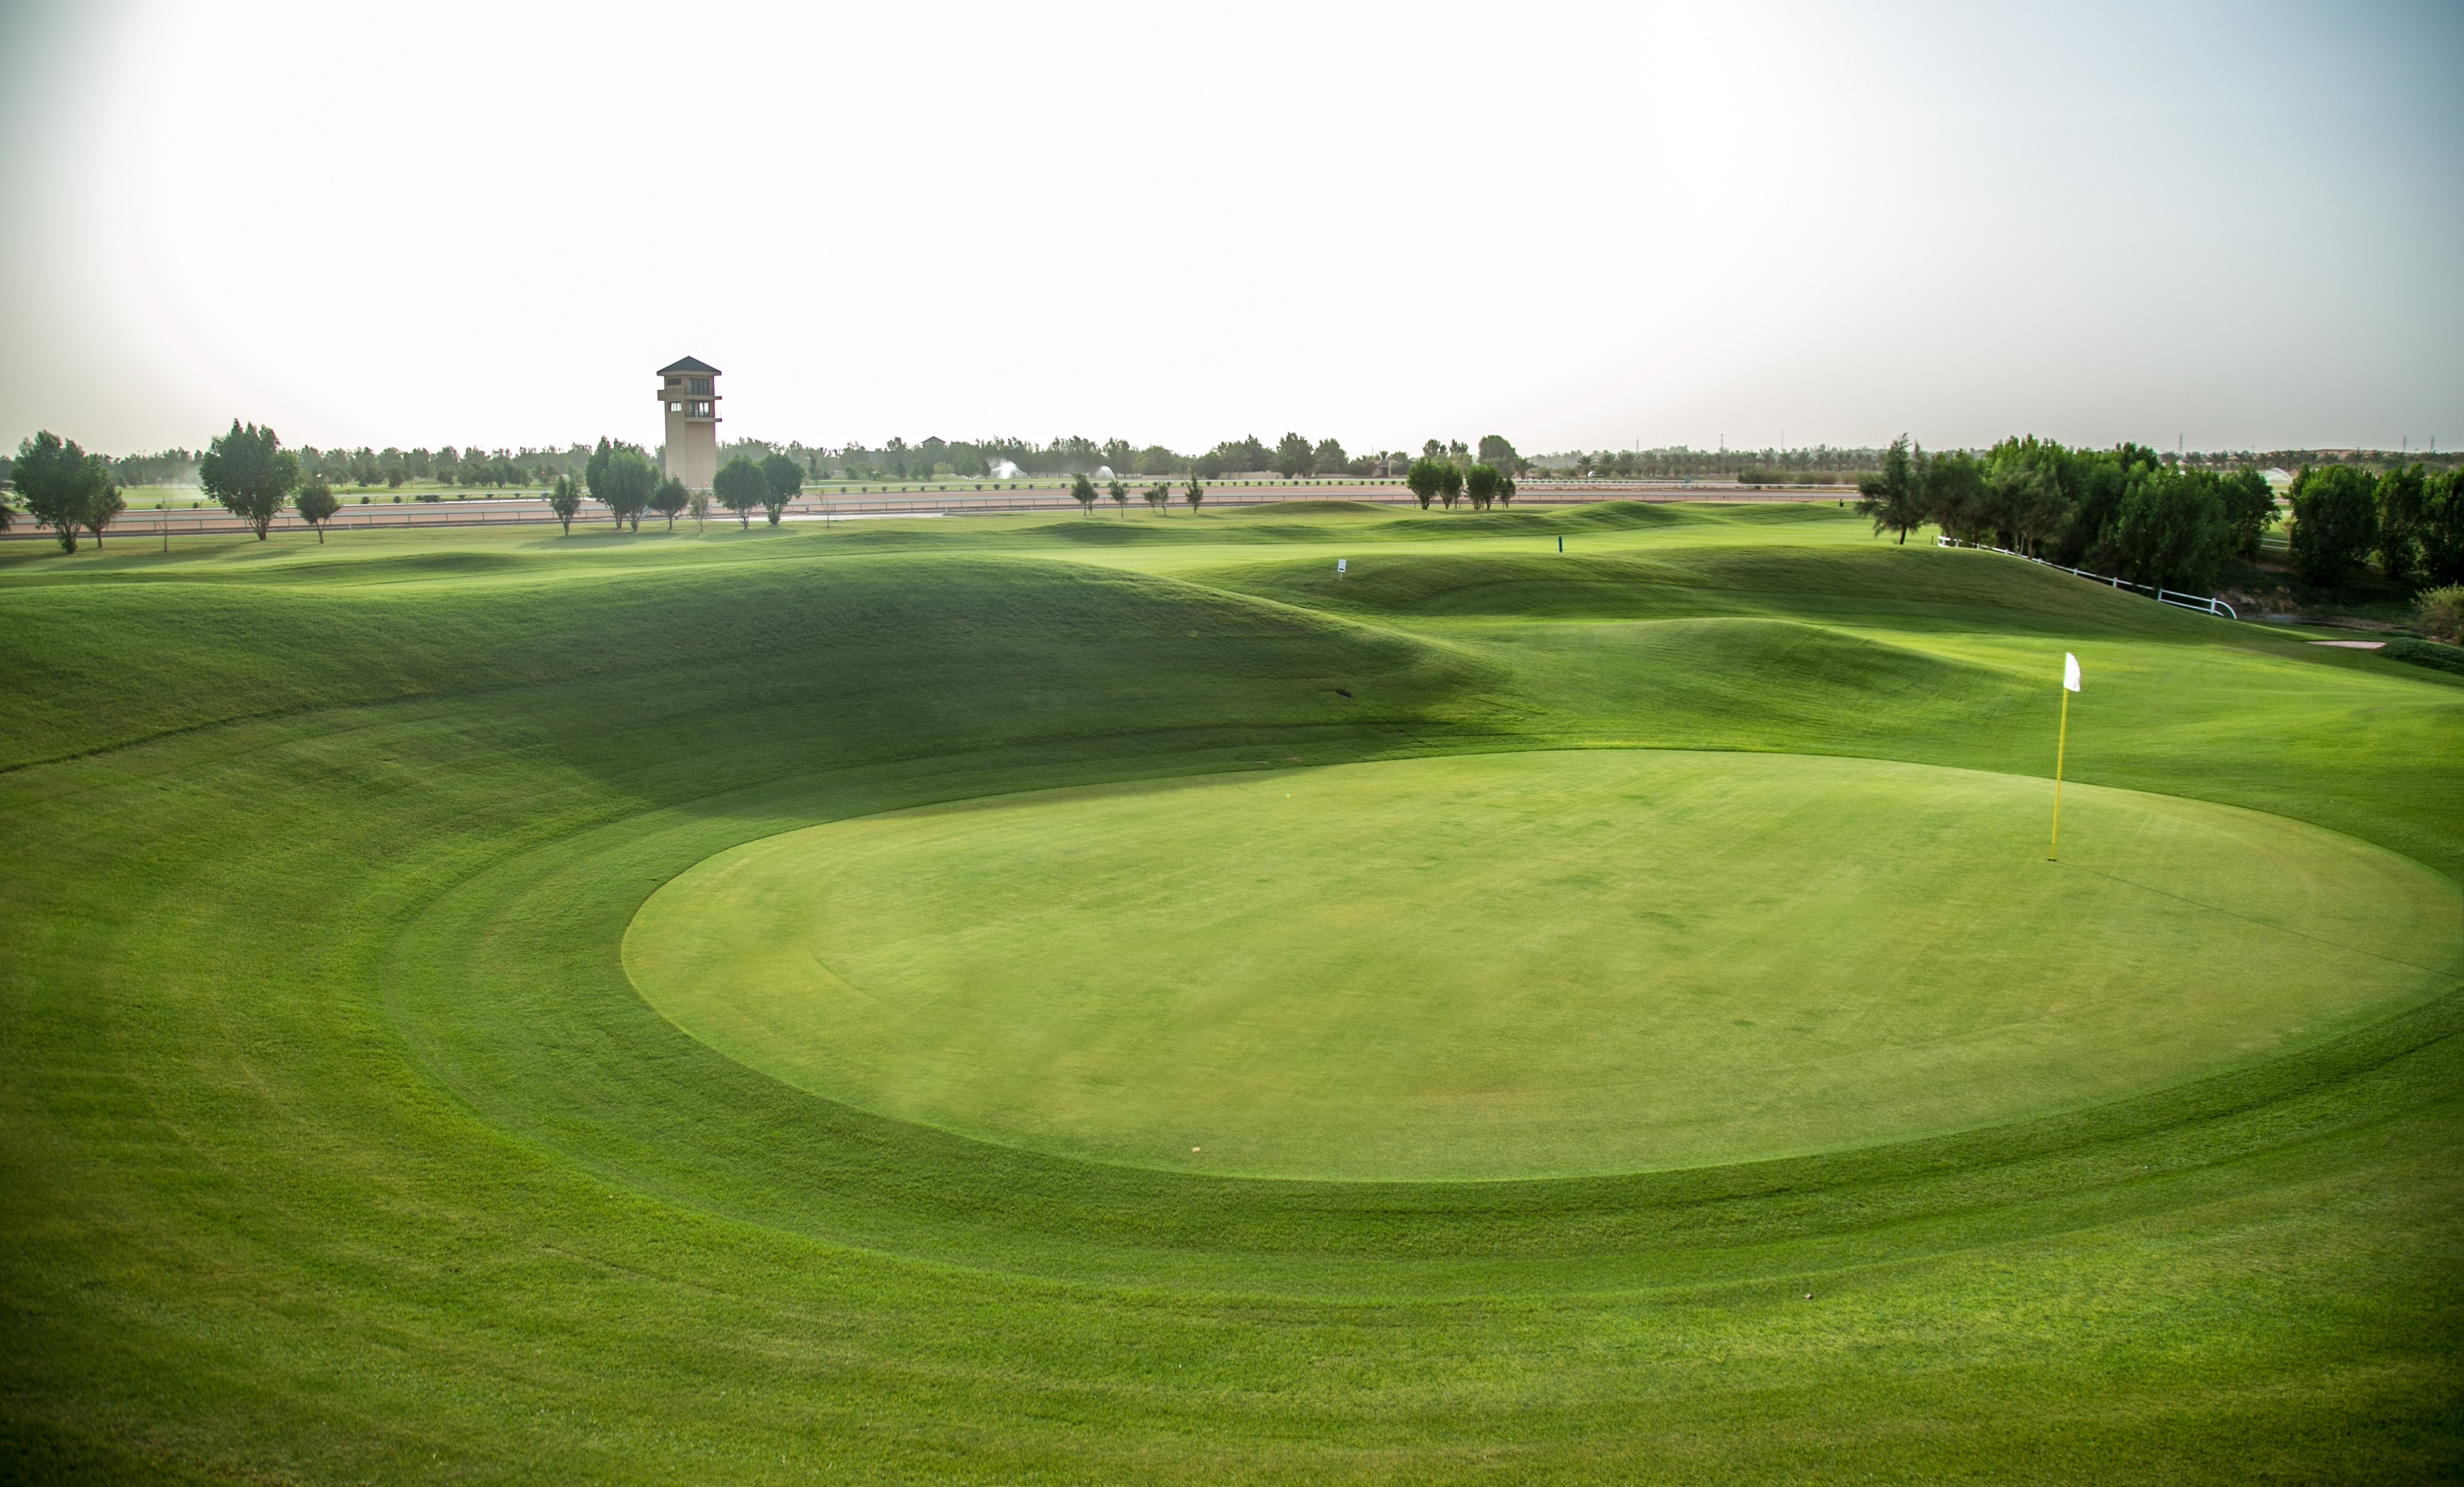 Saudi Golf Courses To Re-Open This Week